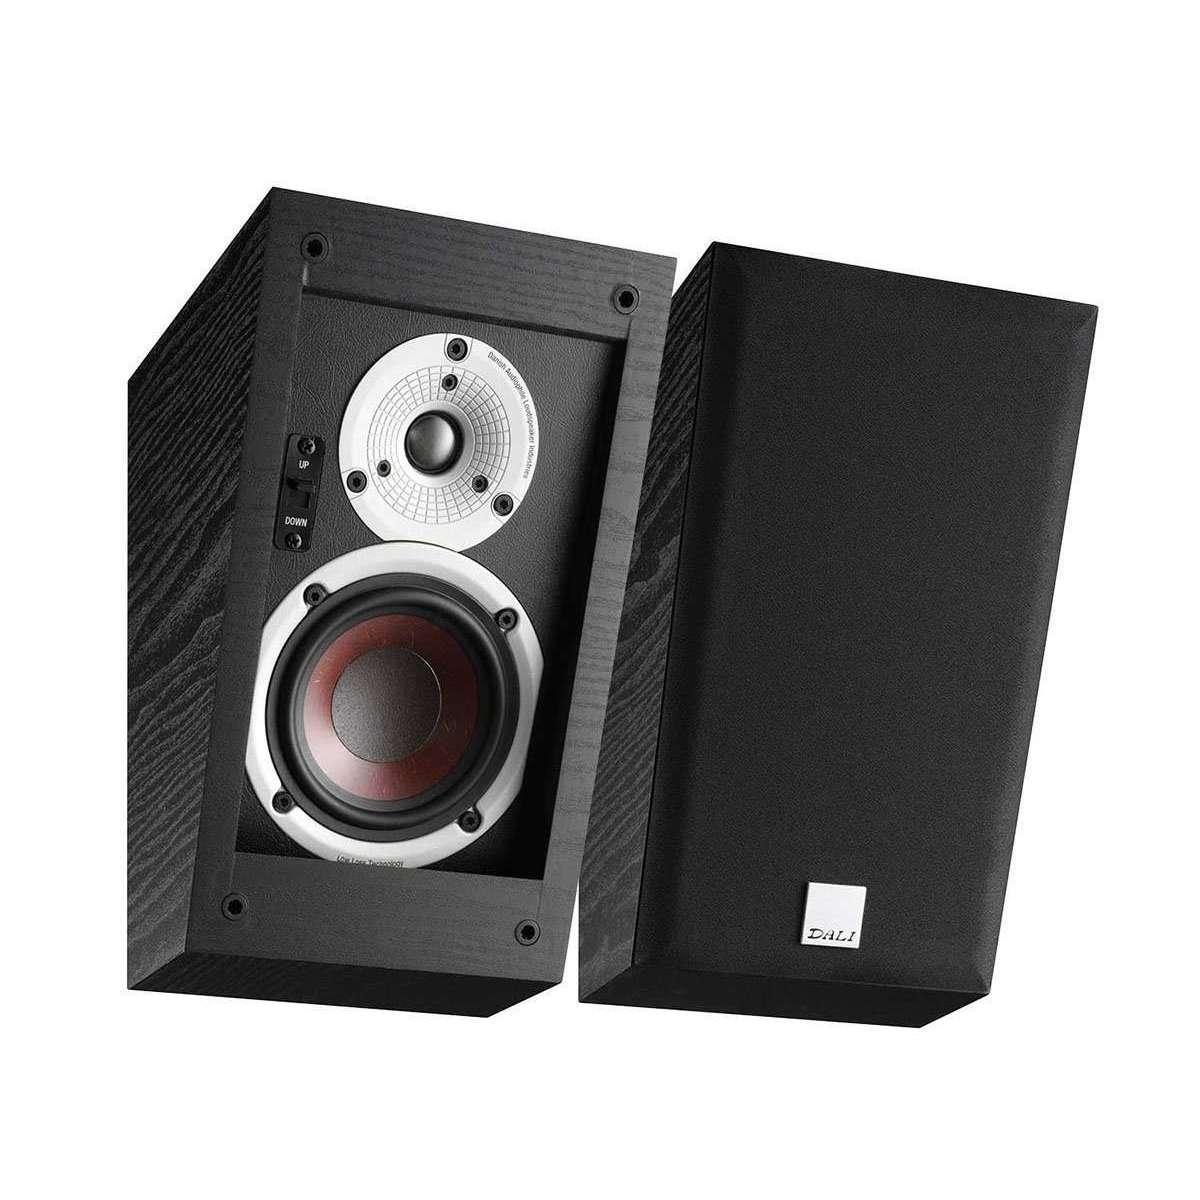 Dali Alteco ATMOS Speakers - Black Ash - Call SpatialOnline 0345 557 7334